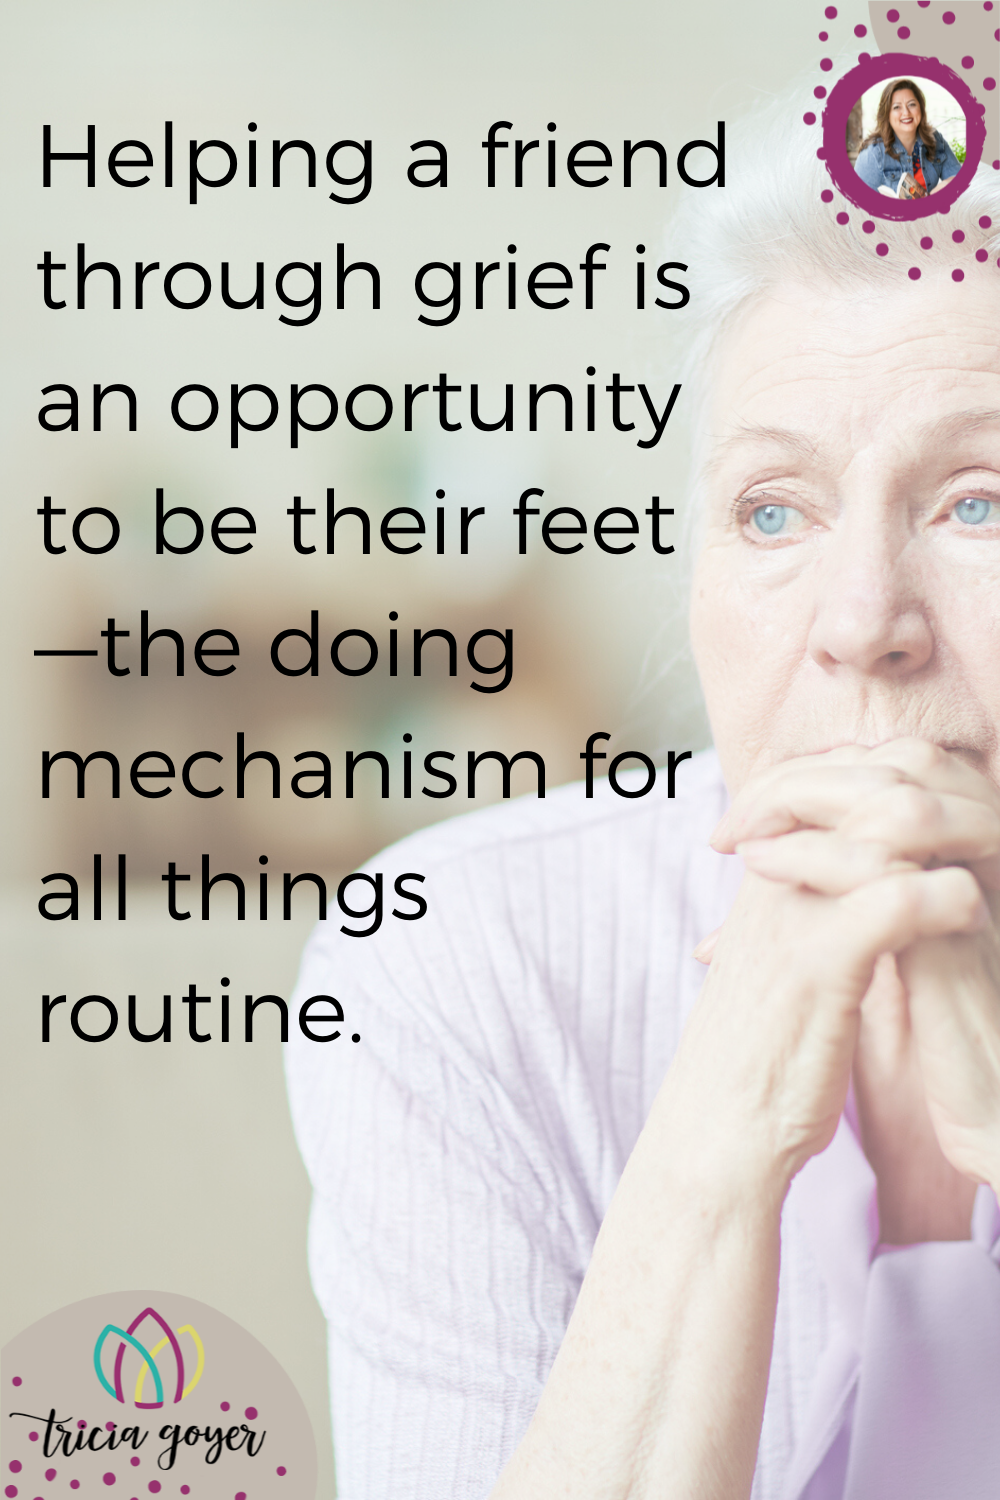 From the blog post 5 Simple Ways to Love a Friend in Their Grief